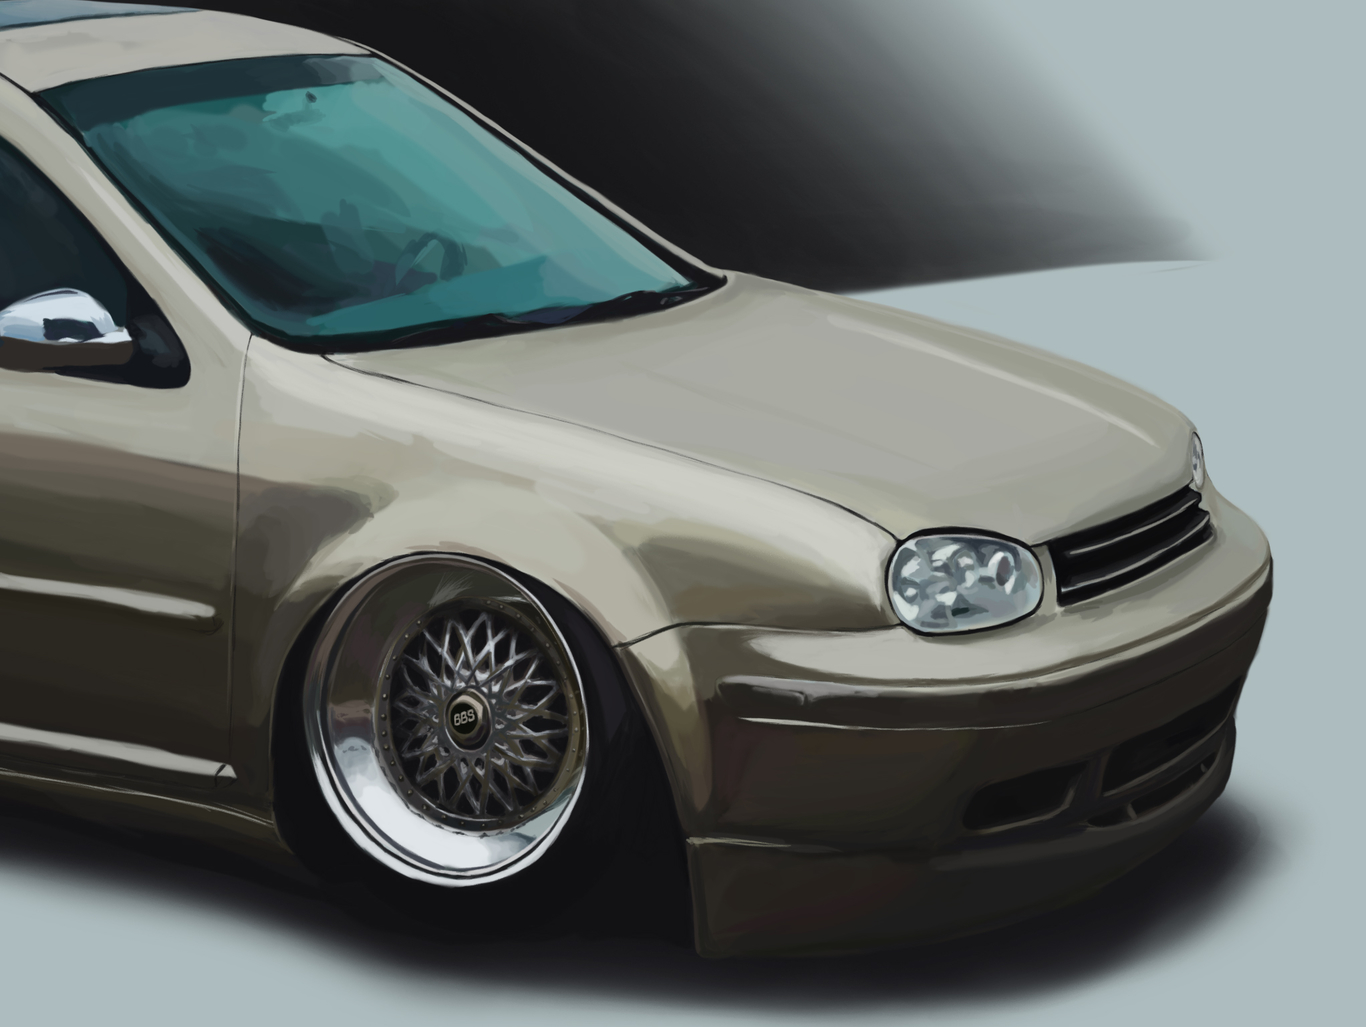 hight resolution of  vw golf gti mk4 scerogrey cgsociety